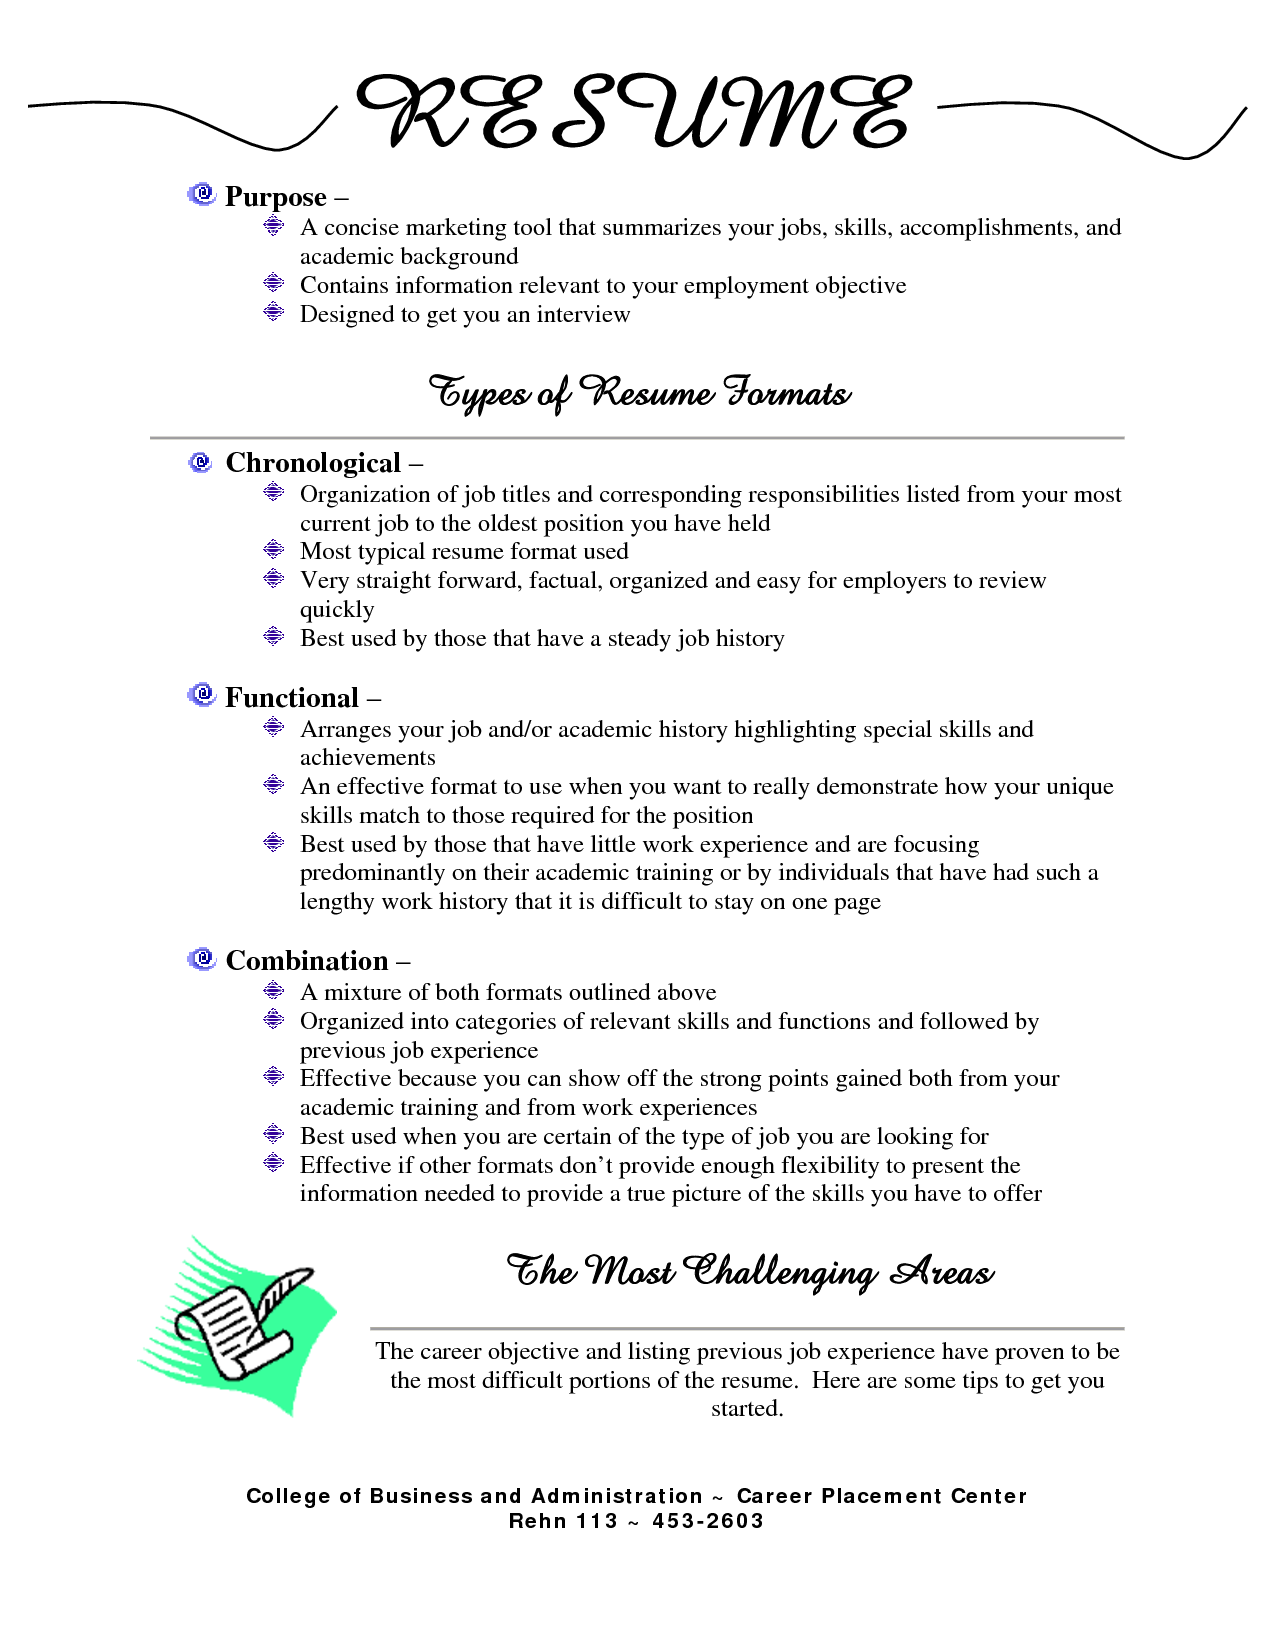 what is the best type of resume to use